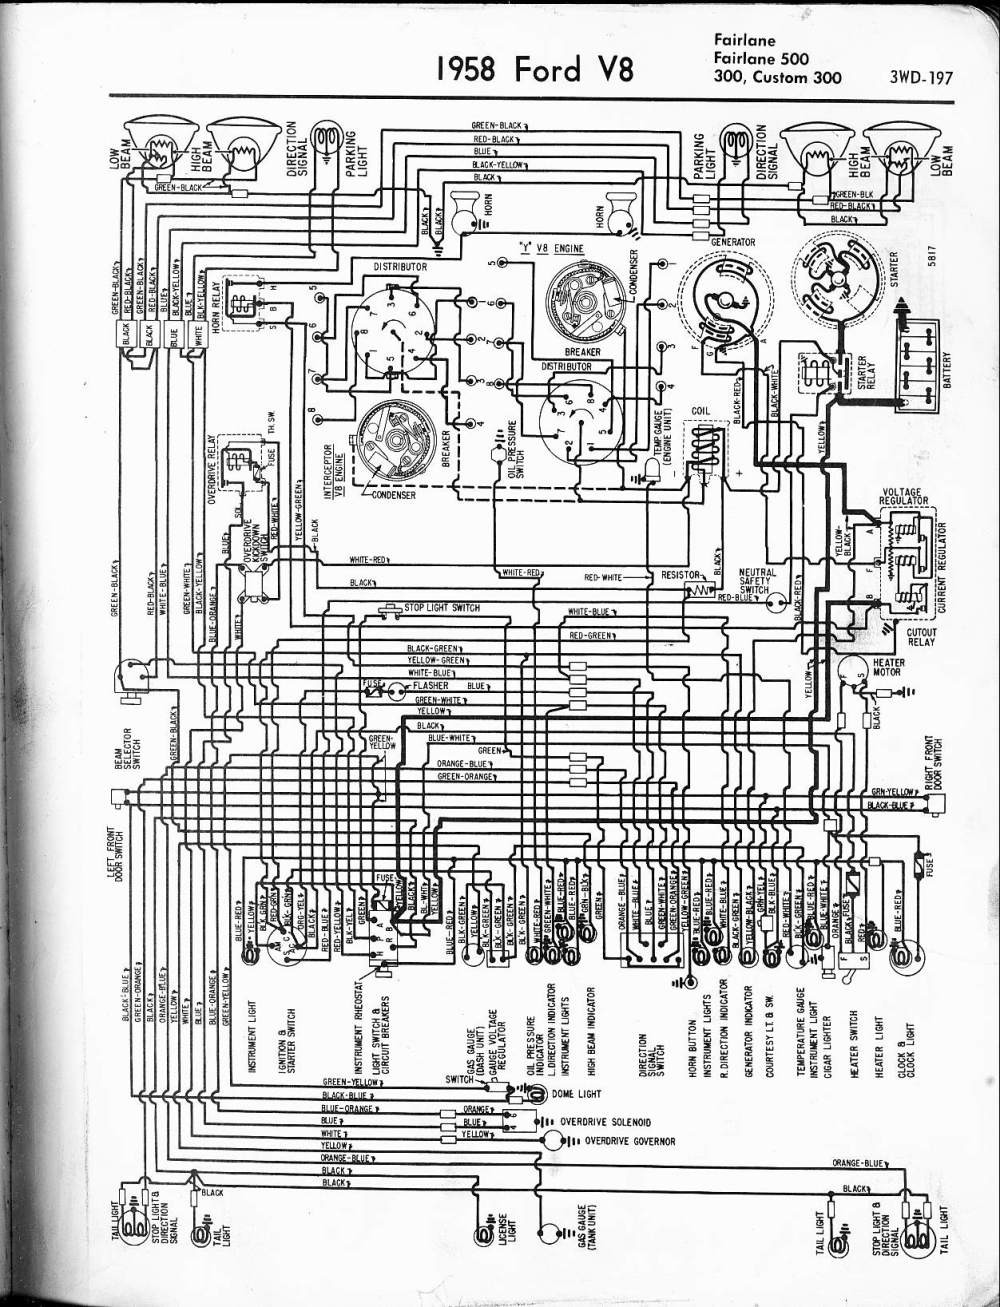 medium resolution of 1956 ford fairlane wiring diagram simple wiring diagram rh david huggett co uk